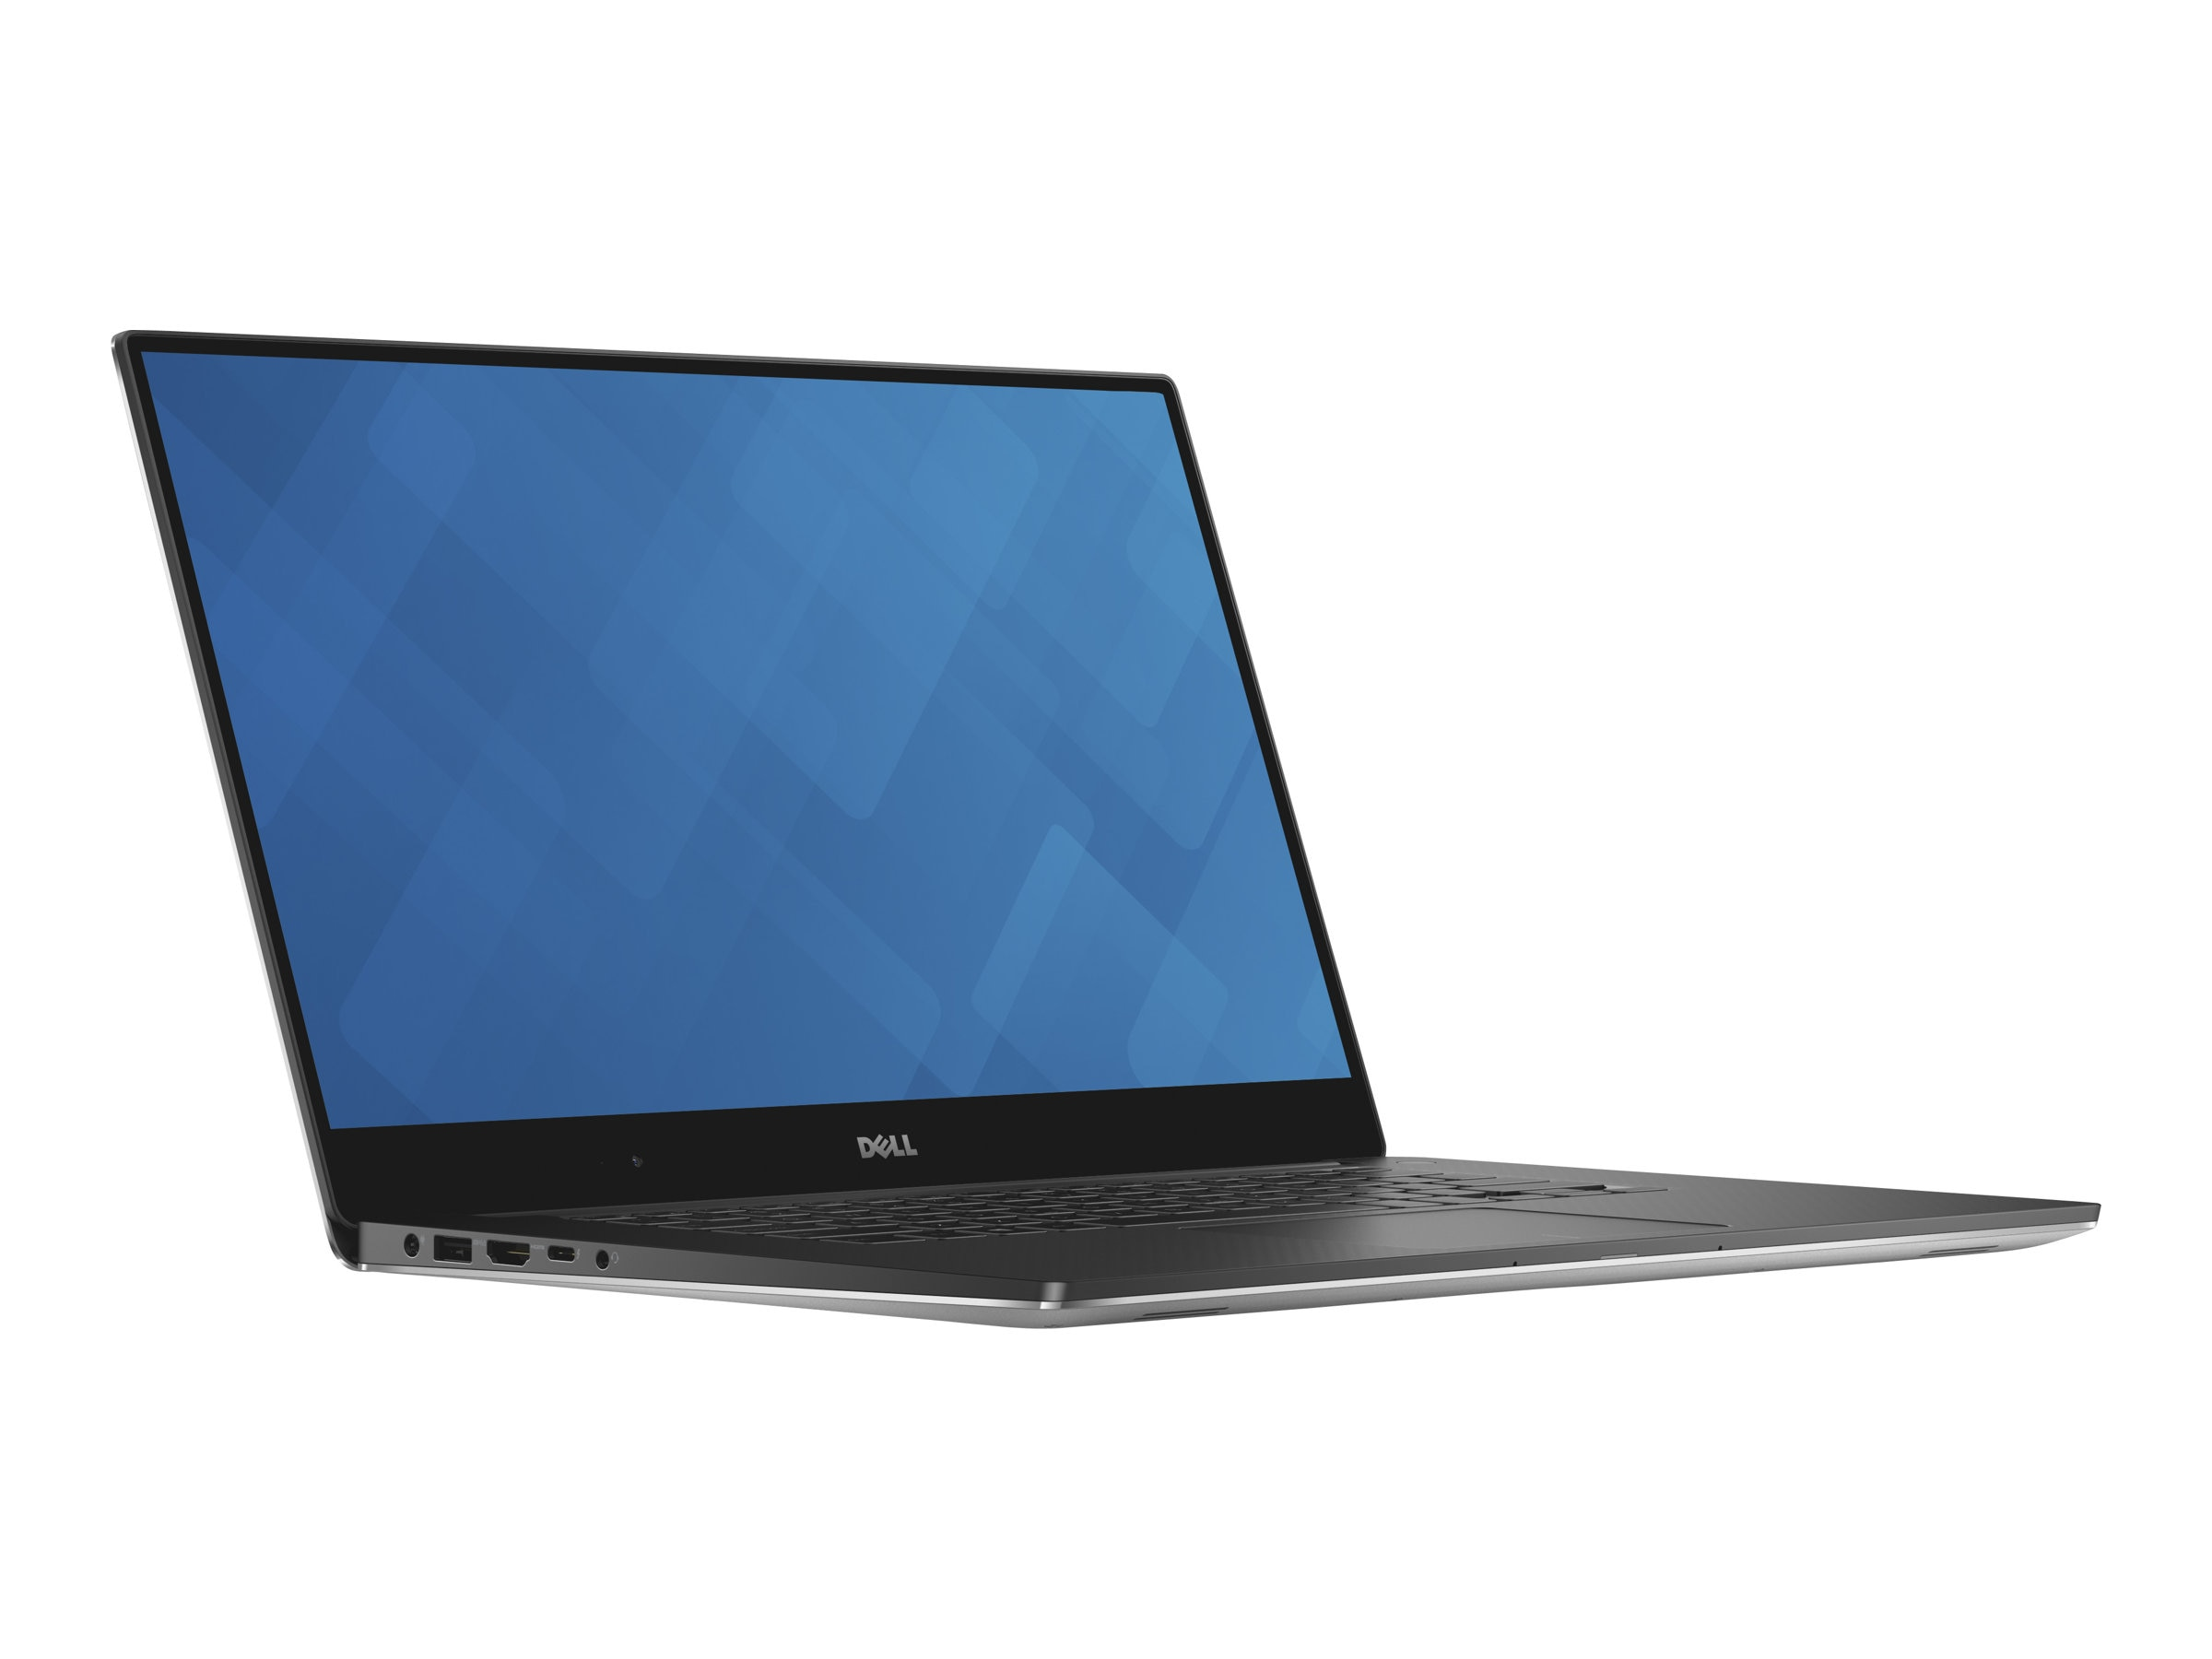 Dell RR1WX Image 1